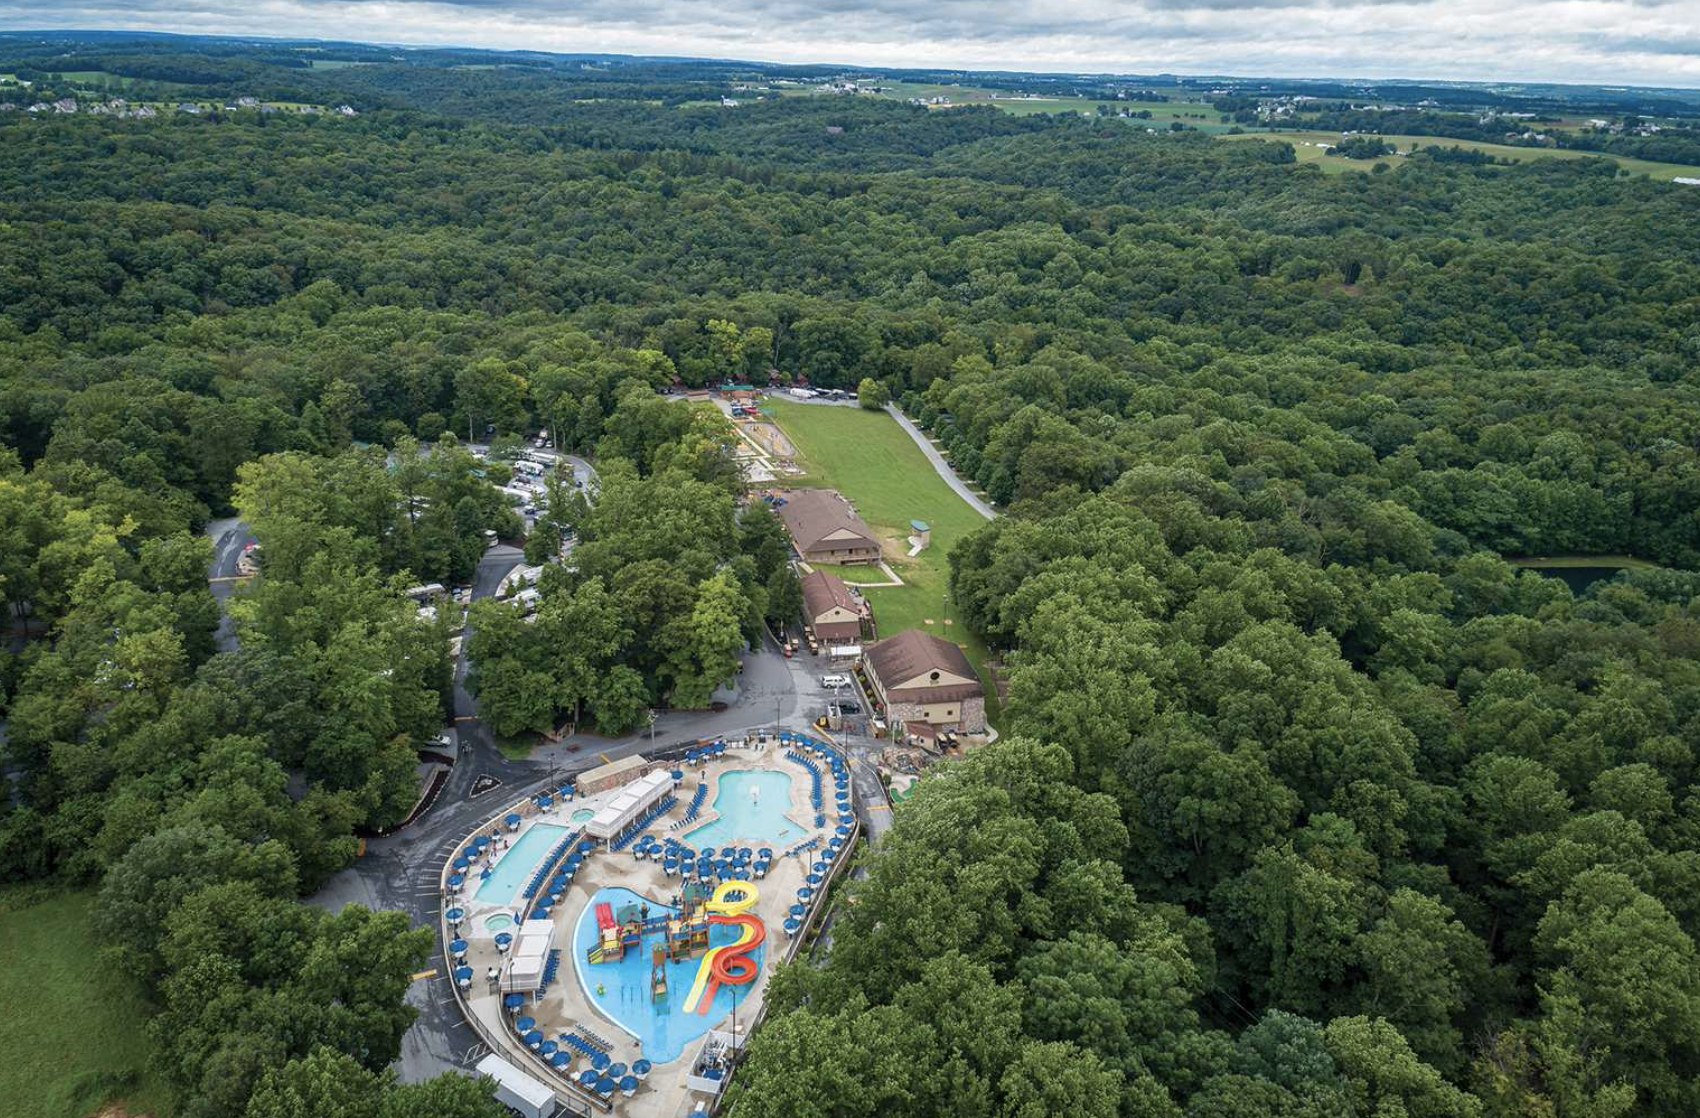 Aerial view of campground in the woods with pool area